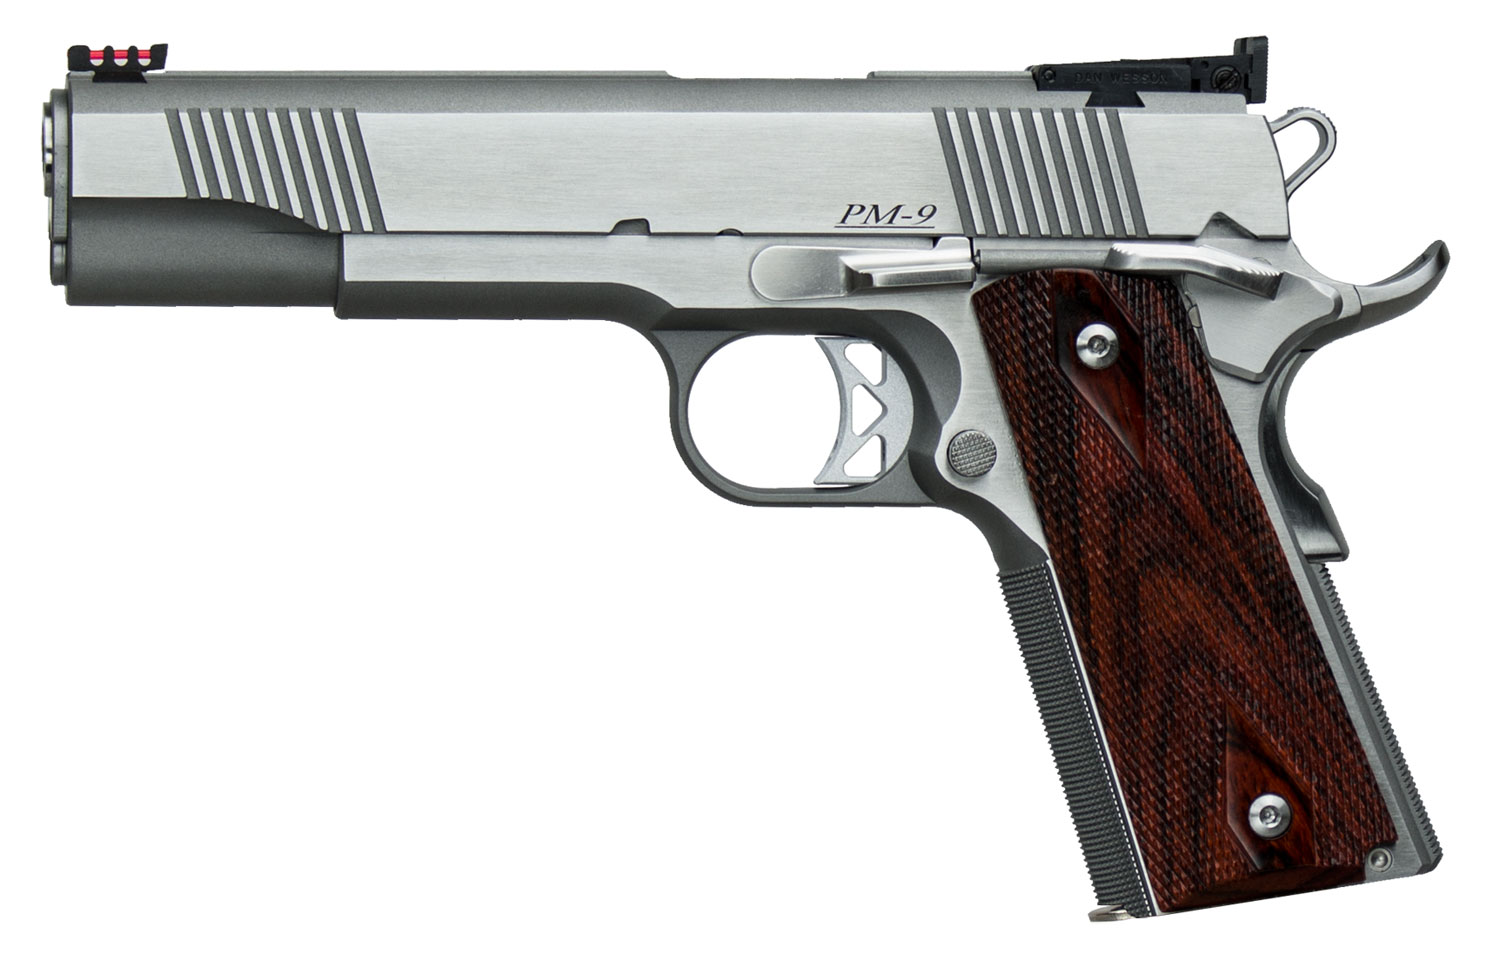 DW POINTMAN 38 38SPR 9+1 AS - 5 | STAINLESS/COCOBOLO GRIPS